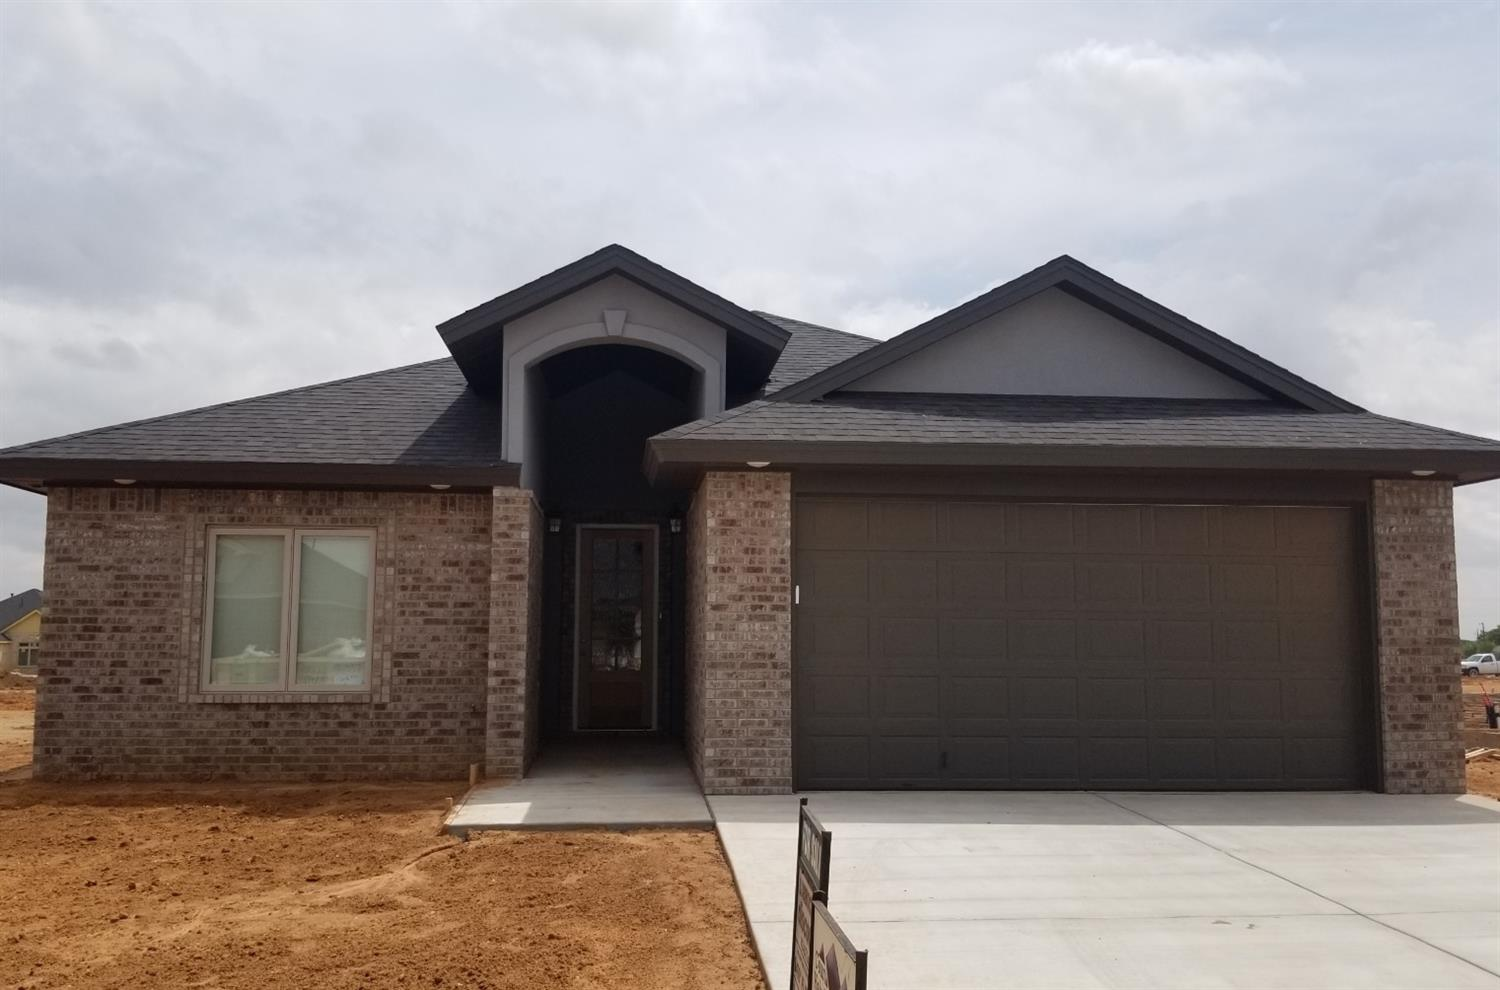 Come and see this exciting new 4-2.5-2 offering from Court Holmberg Homes, LLC in Bushland Springs, Custom Painted Cabinets Throughout, Custom Lighting package, S/S Appliances, Gas range with convection oven, Granite Countertops In Kitchen & bathrooms. Separate Laundry Room with extra storage!  Spacious Bedrooms. Lots Of beautiful wood-look tile work; Great Storage Throughout. Isolated Master Suite Has Custom Tile Shower And Luxurious Soaker Tub with 12x24 tile surround. Owens-Corning R-15 exterior walls and Spray foam insulation in attic. Seller Is A Licensed Texas Agent. Builder will install 6' cedar fence with steel posts, automatic sprinkler system and sod in the purchase price.